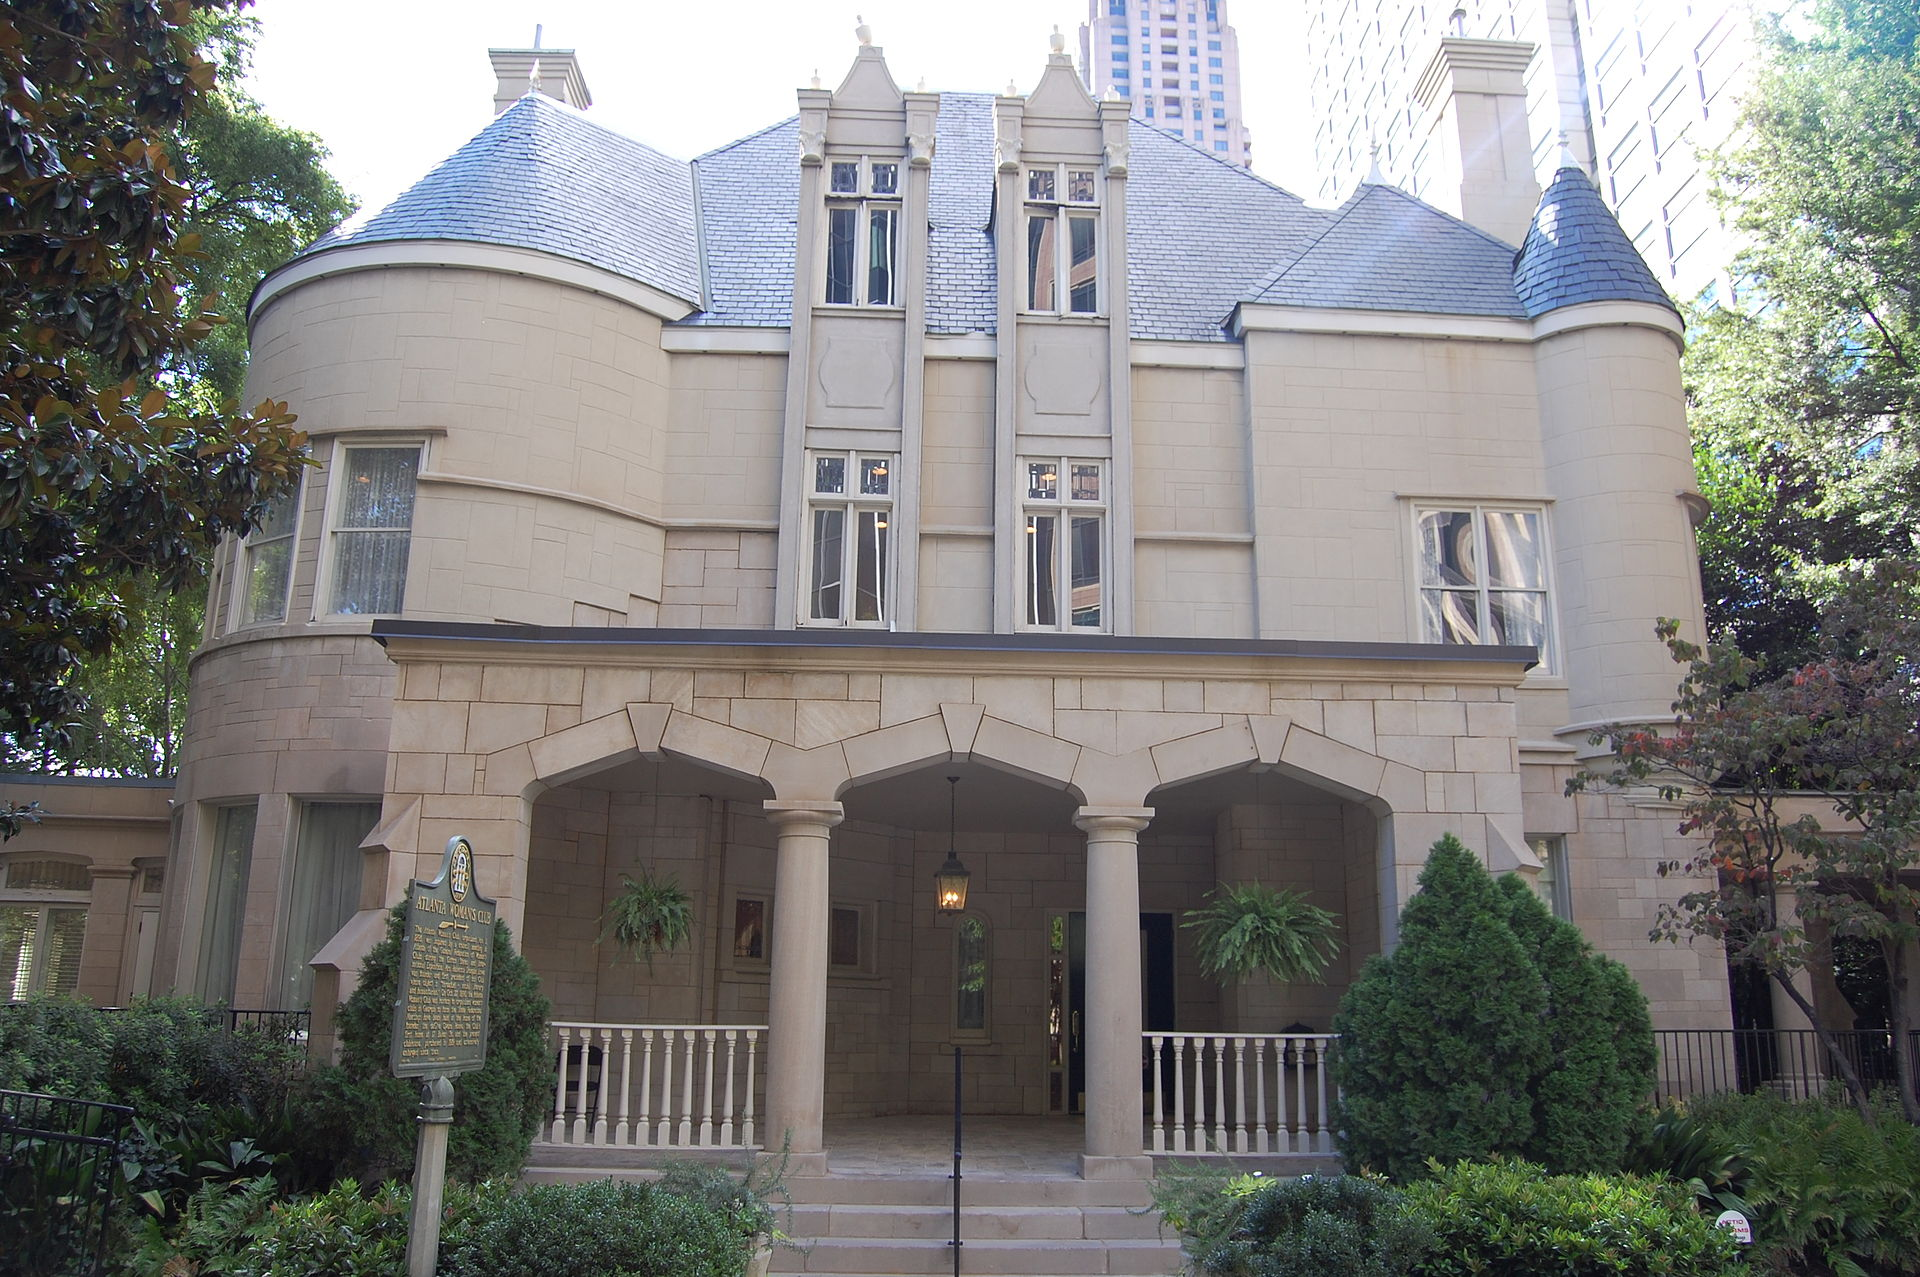 The Wimbish House was built in 1906 and became the headquarters of the Atlanta Women's Club in 1919.